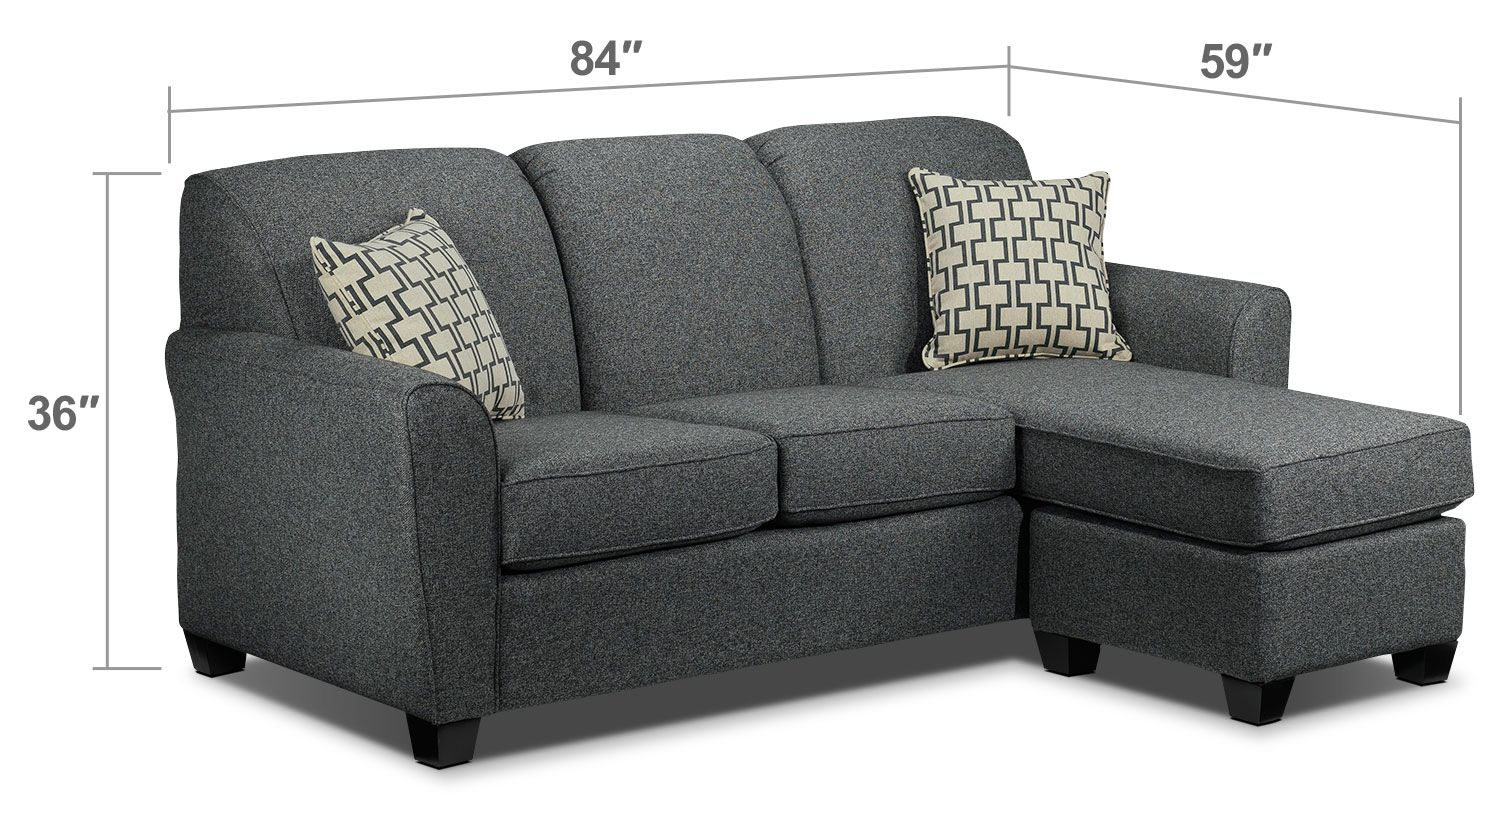 Excellent Ashby Chaise Sofa Grey Leons For The Home Chaise Andrewgaddart Wooden Chair Designs For Living Room Andrewgaddartcom